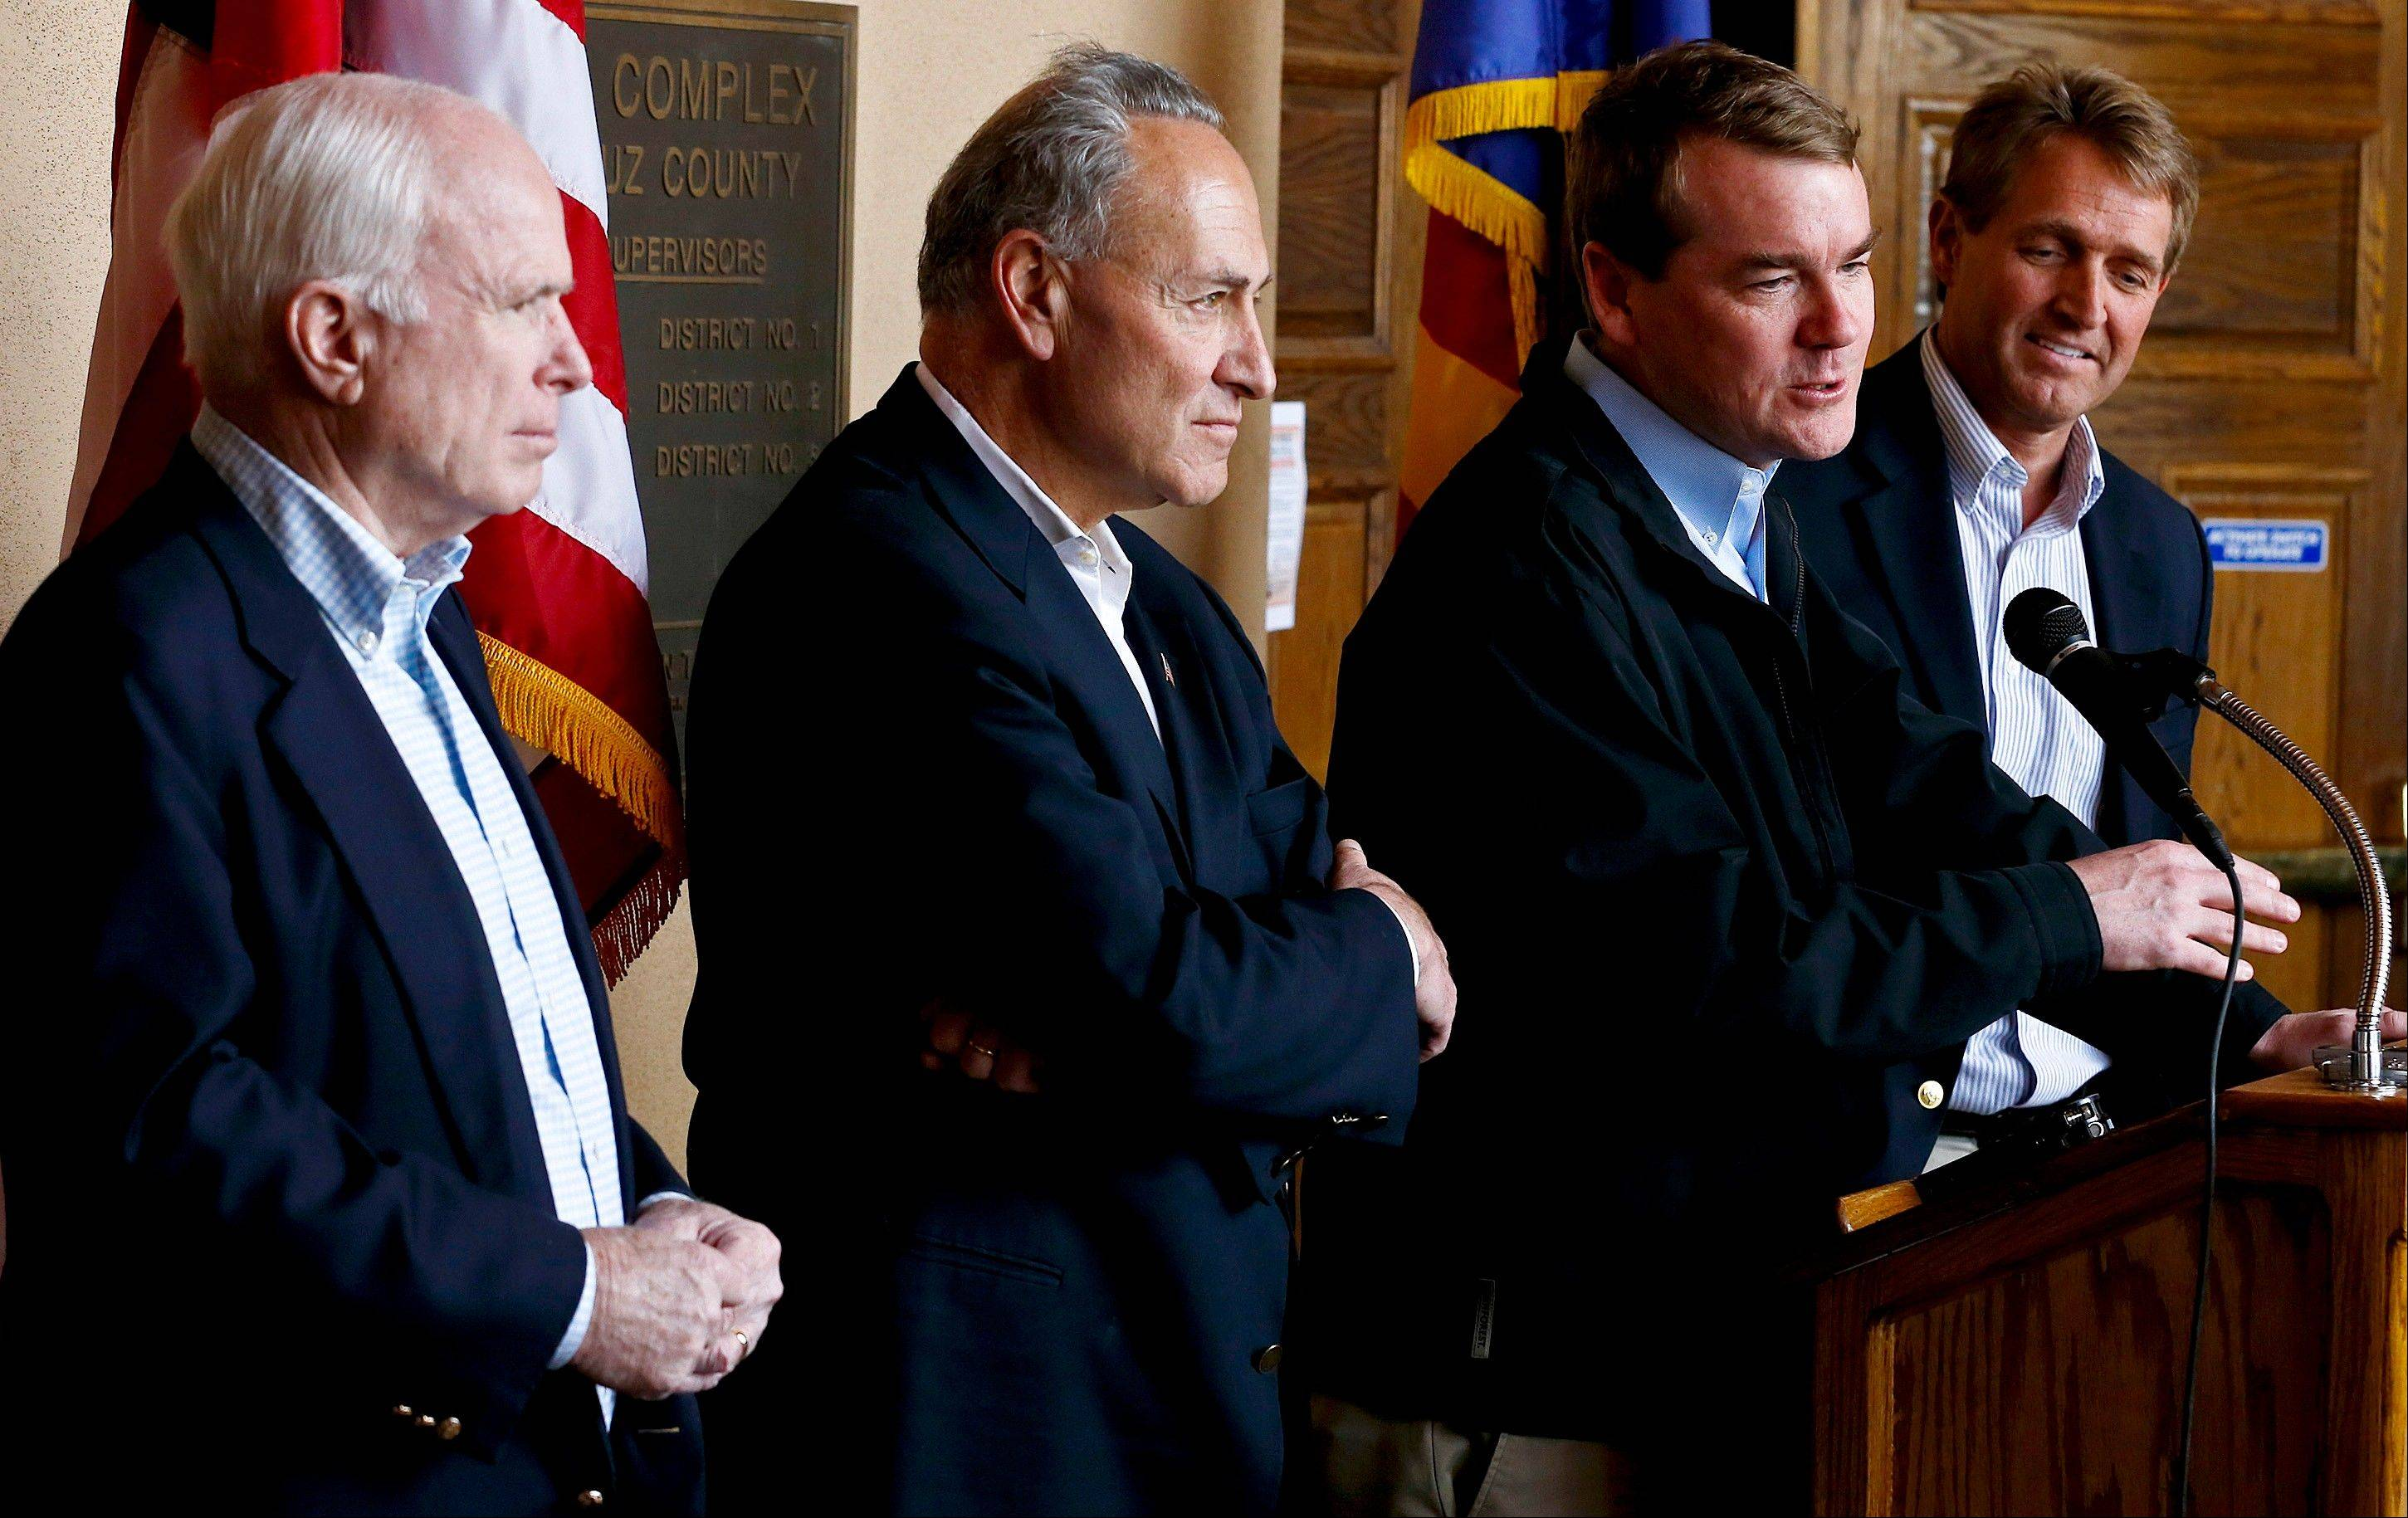 Colorado Democratic Sen. Michael Bennett, second right, speaks, as, from left, Sen. John McCain, R-Ariz., Sen. Chuck Schumer, D-N.Y., and Sen. Jeff Flake, R-Ariz., listen during a news conference after their tour of the Mexico border with the United States on Wednesday.